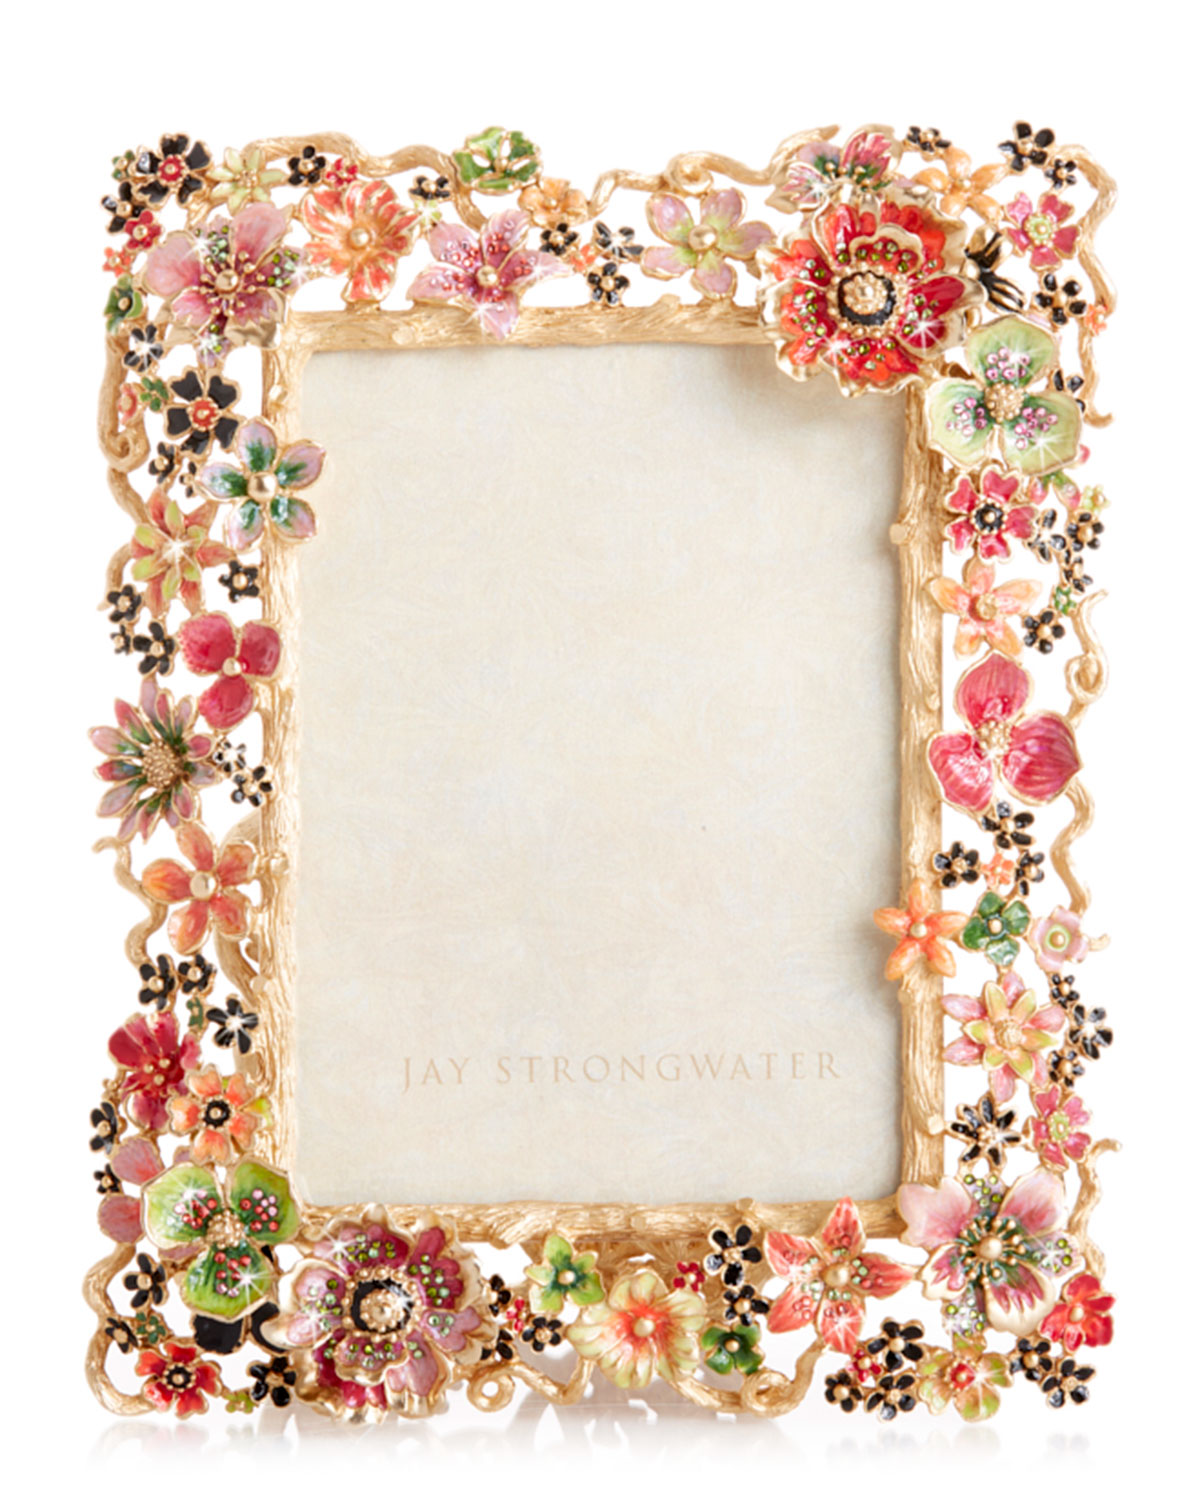 """Jay Strongwater CLUSTER FLORAL FRAME, 5"""" X 7"""""""